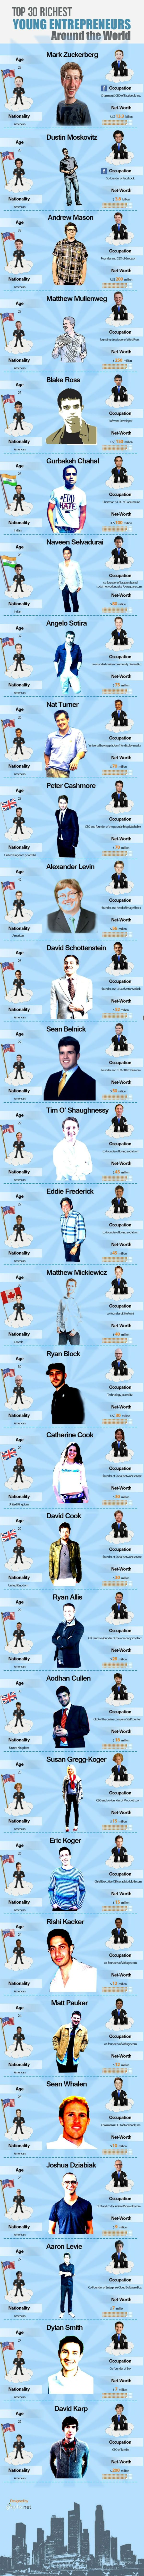 Top 30 Richest Young Entrepreneurs Around The World